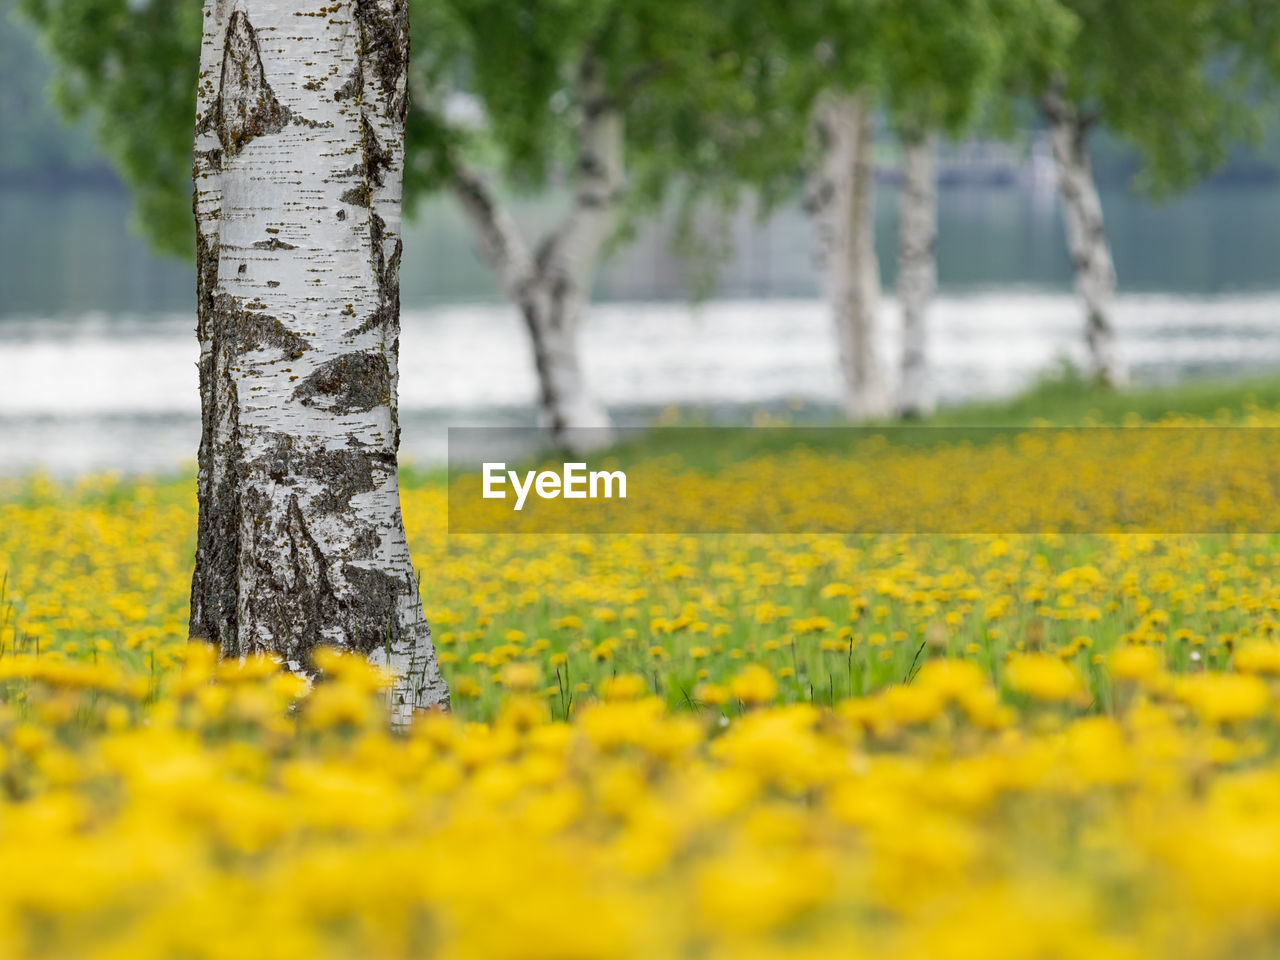 plant, yellow, tree trunk, trunk, growth, land, tree, flower, beauty in nature, nature, field, tranquility, landscape, flowering plant, no people, freshness, day, outdoors, selective focus, focus on foreground, springtime, lichen